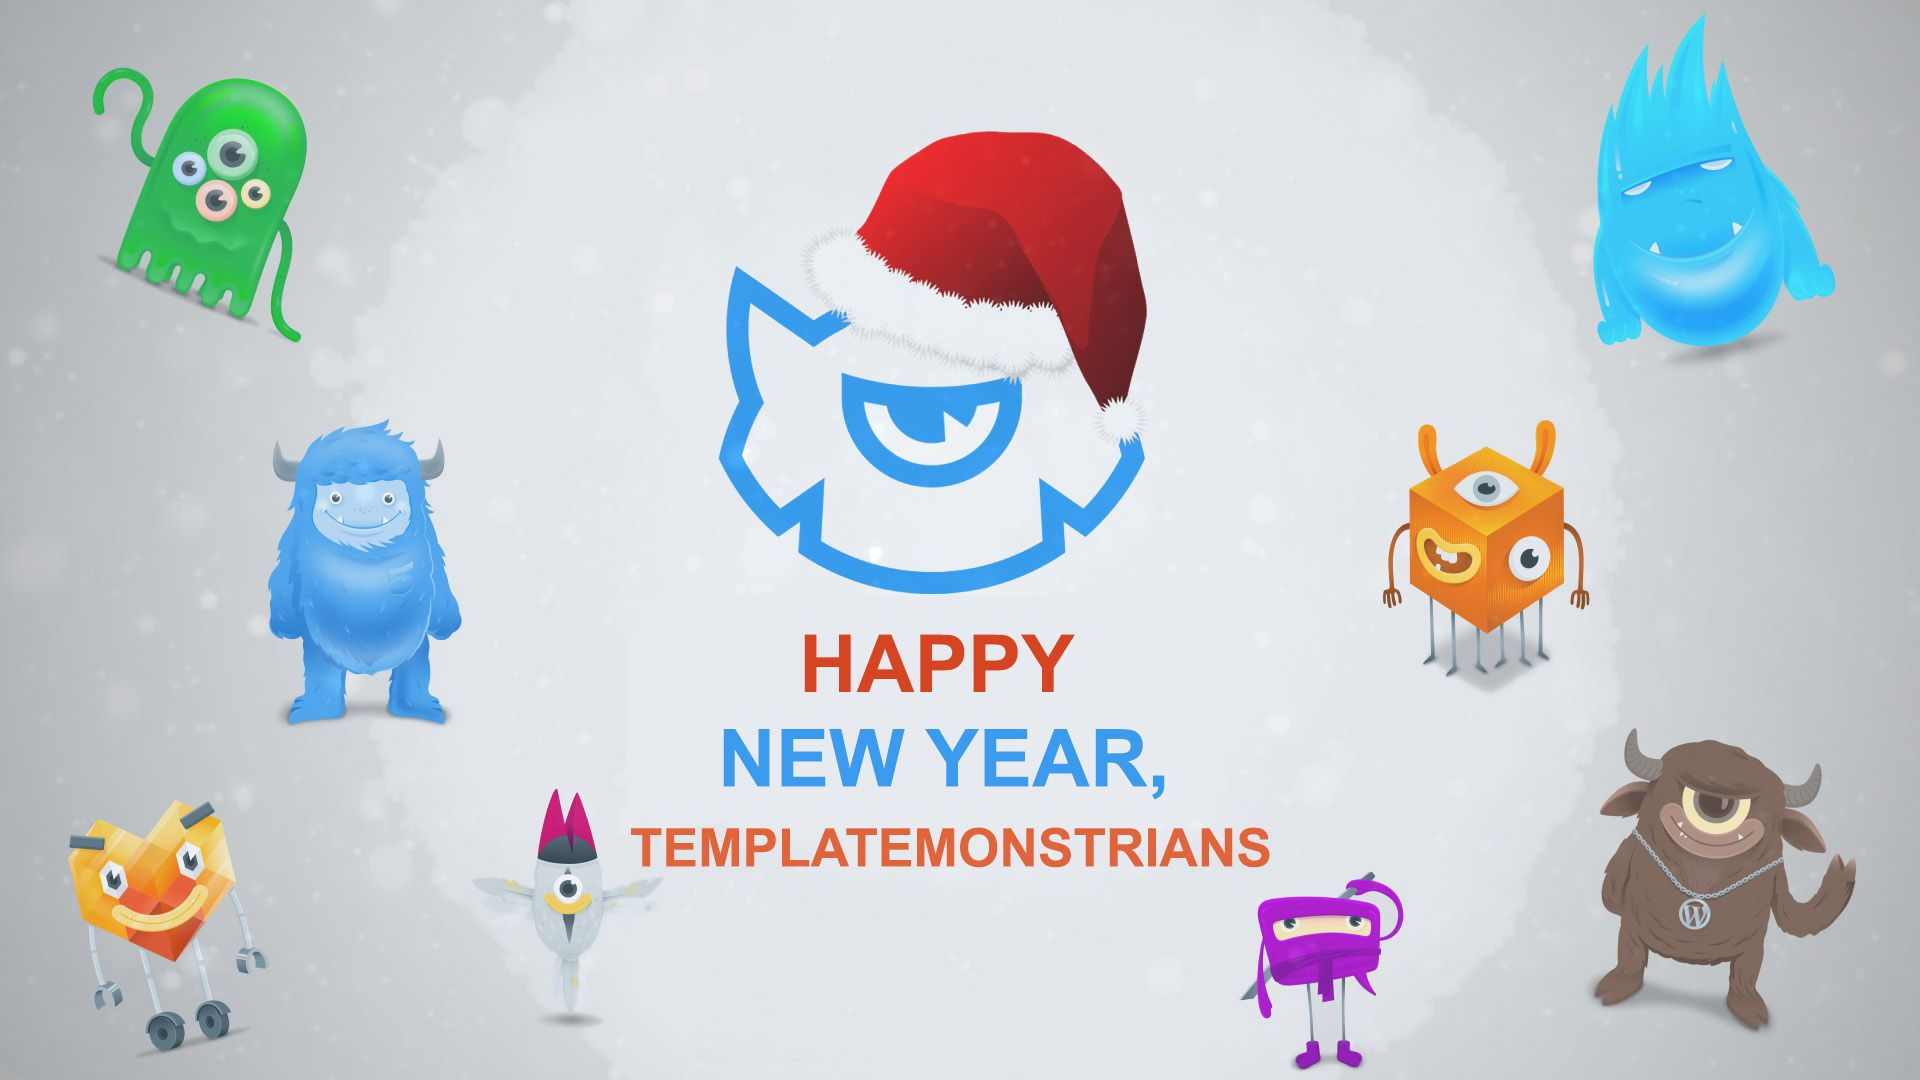 Wish You A Happy And Prosperous New Year Free Web Design Ecommerce Themes Web Template